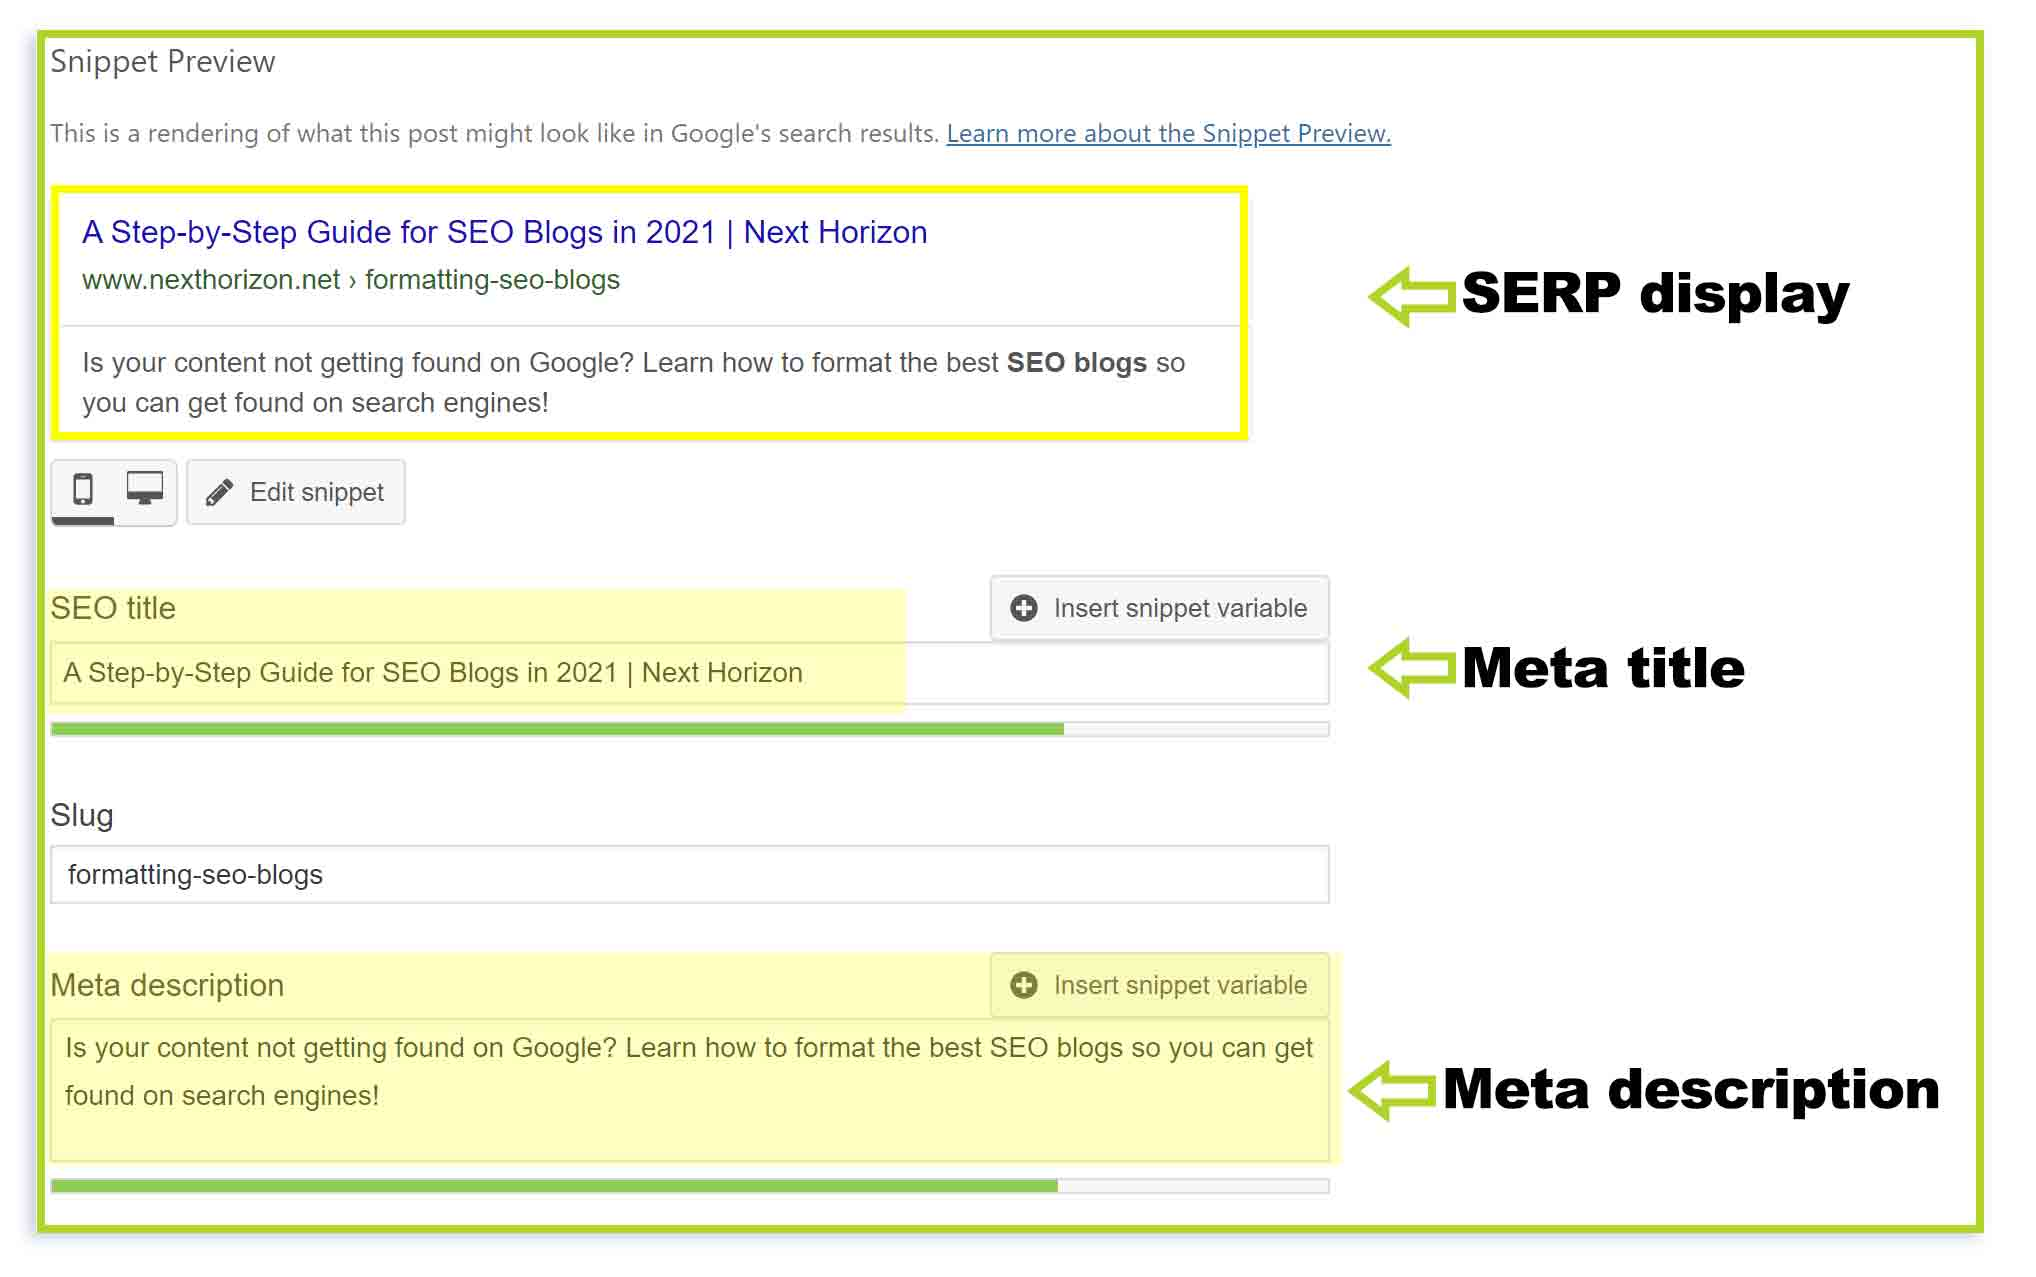 Visual depiction of meta tags and meta descriptions for better SEO